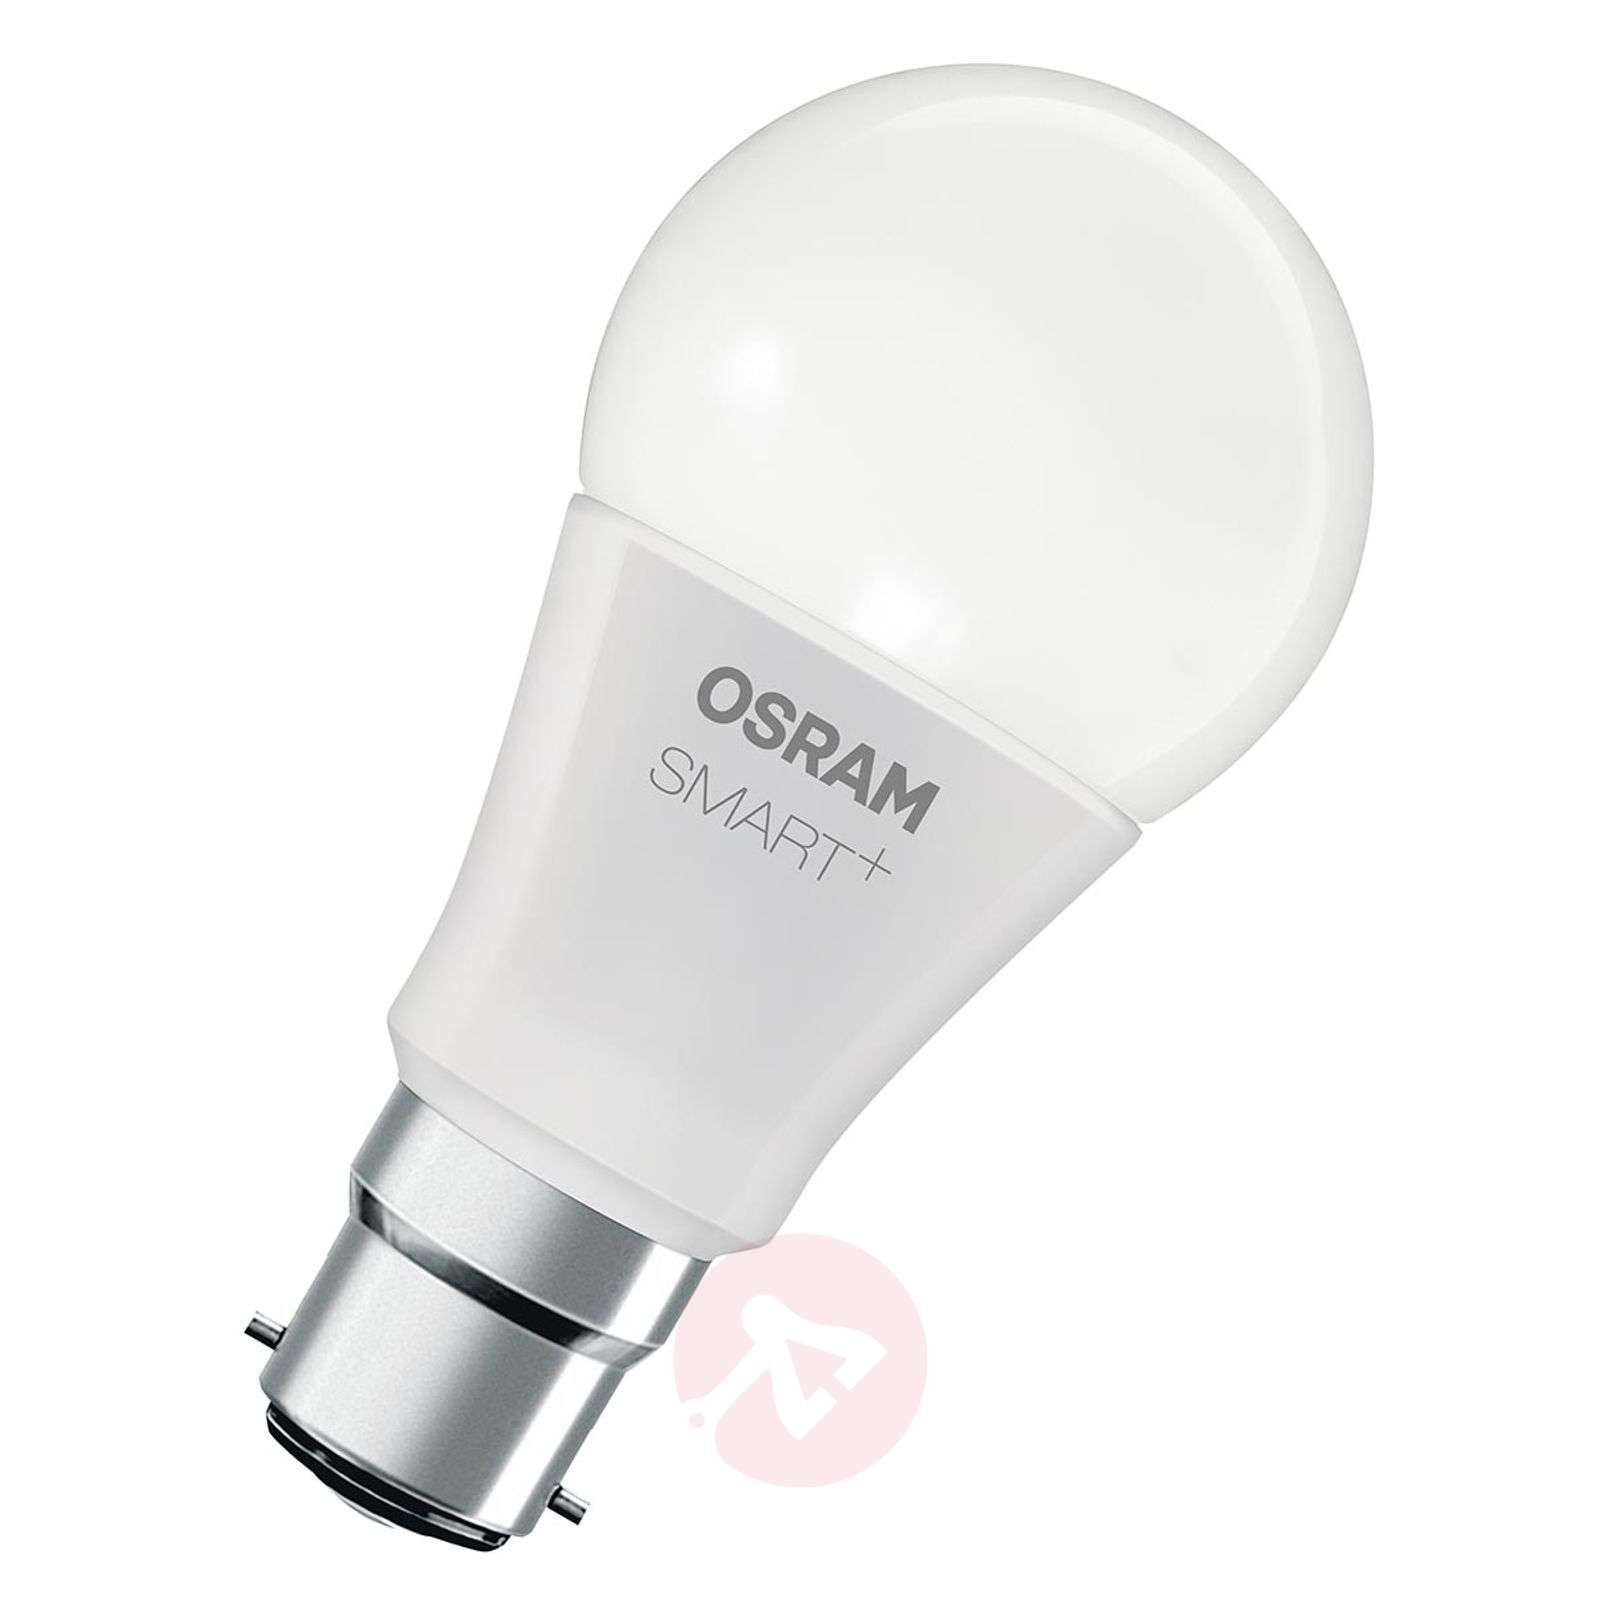 SMART+ LED B22 10 W, RGBW, 800 lm, dimmable-7262125-01